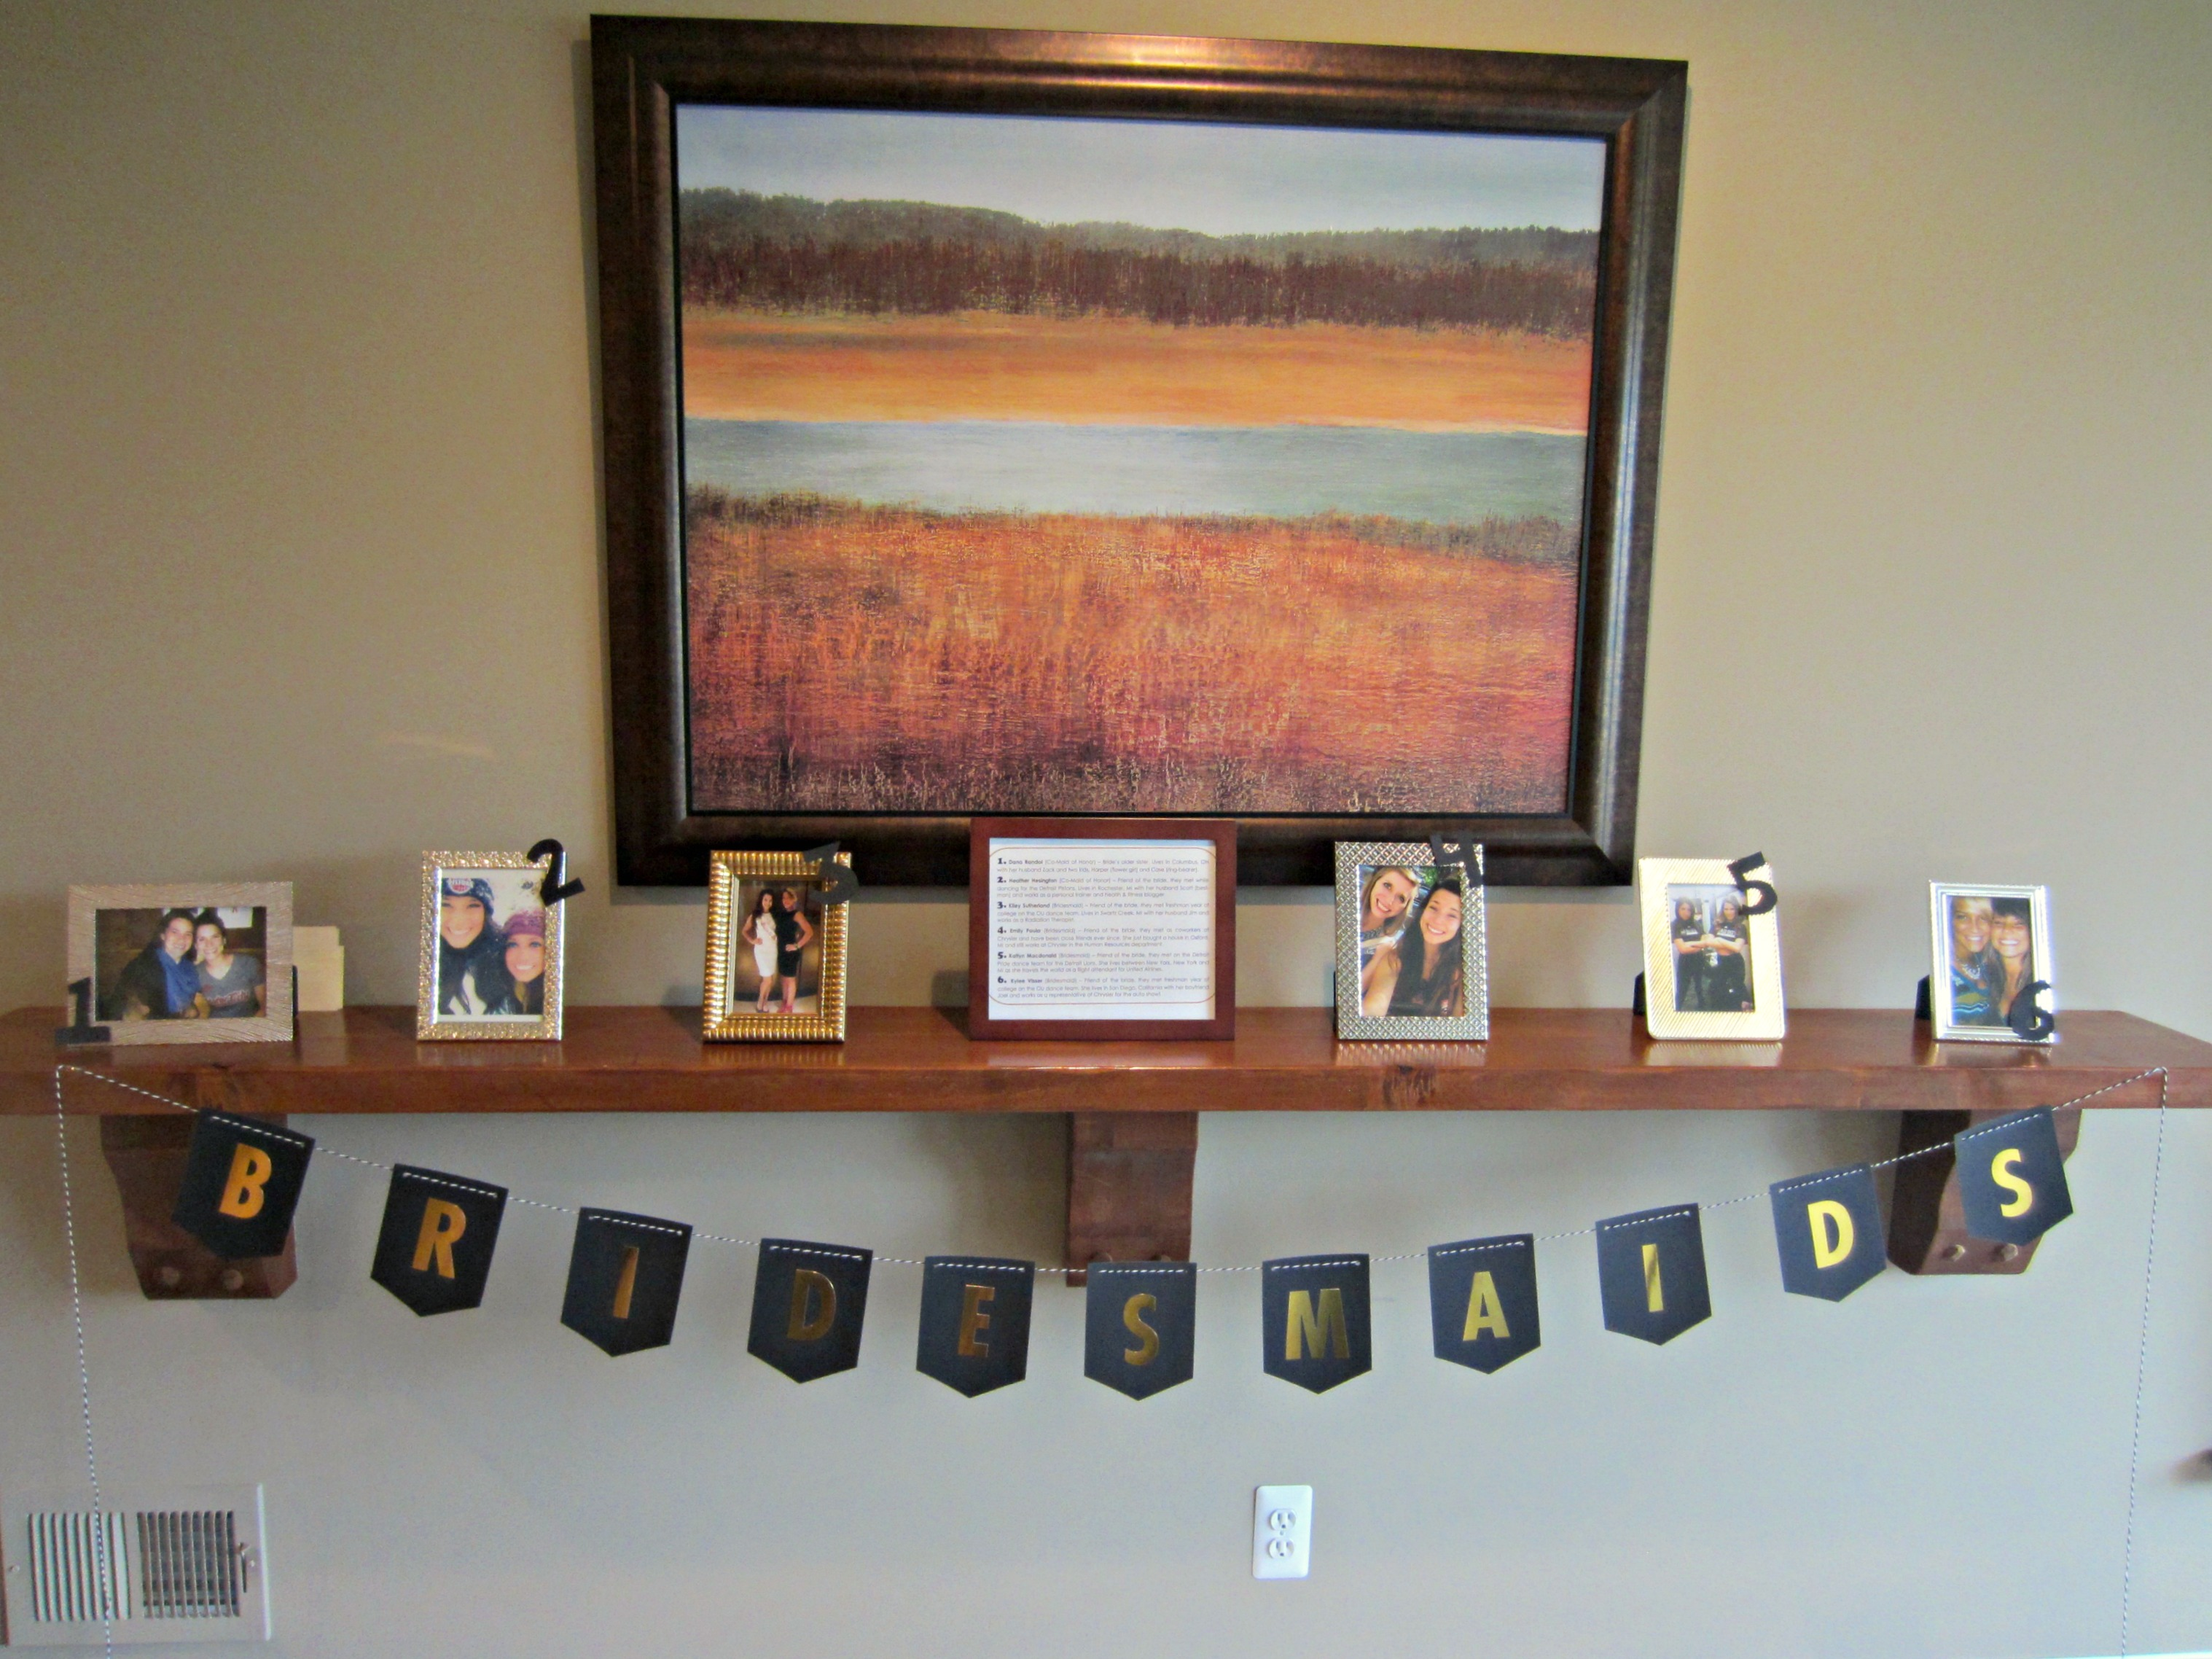 Bridesmaids display for bridal shower